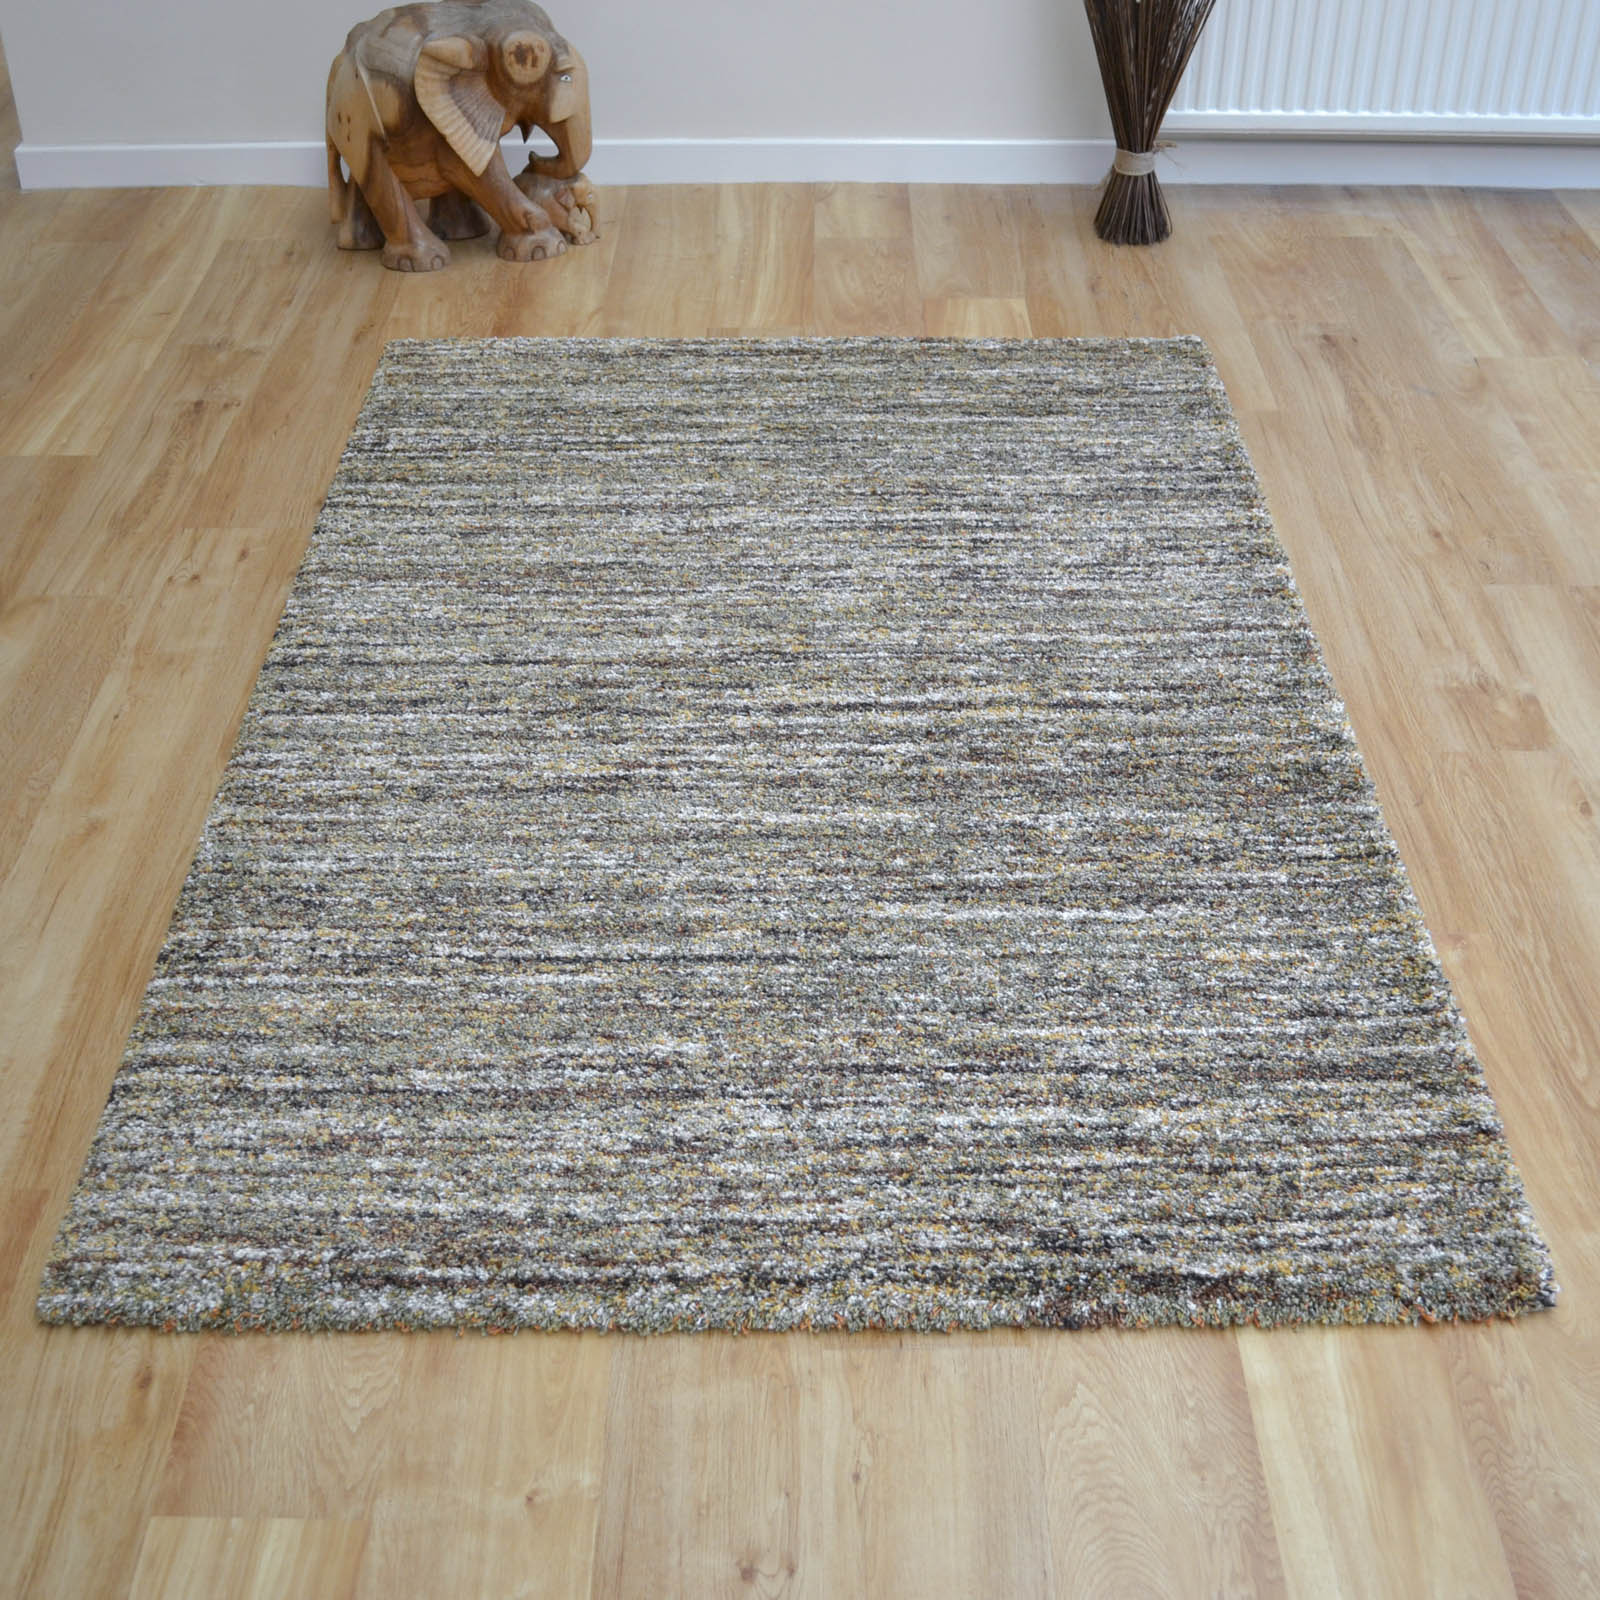 Mehari Rugs 23067 4275 in Green